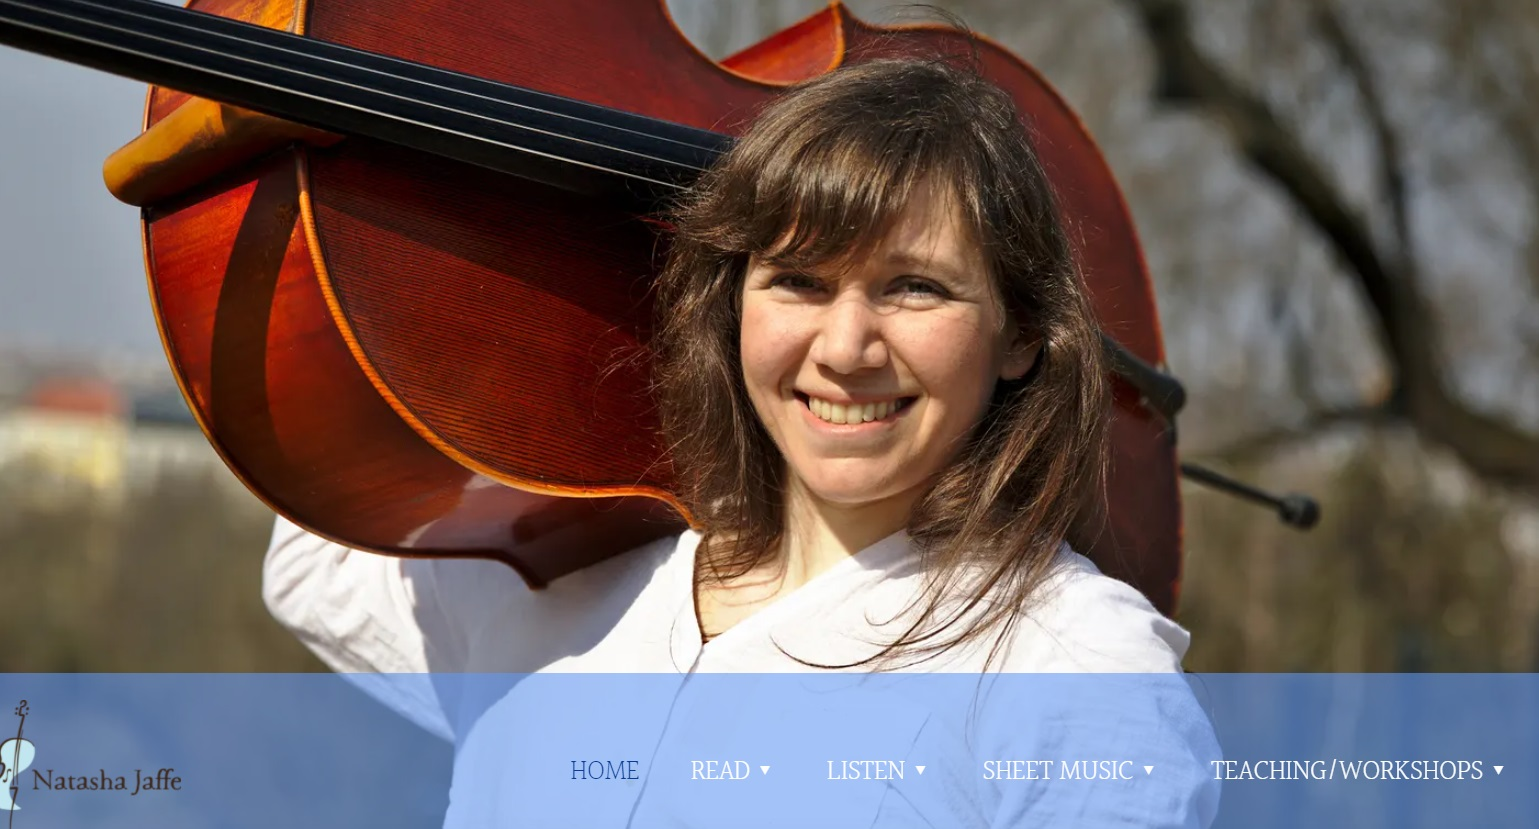 Private online lessons with a Berlin-based cellist Natasha Jaffe